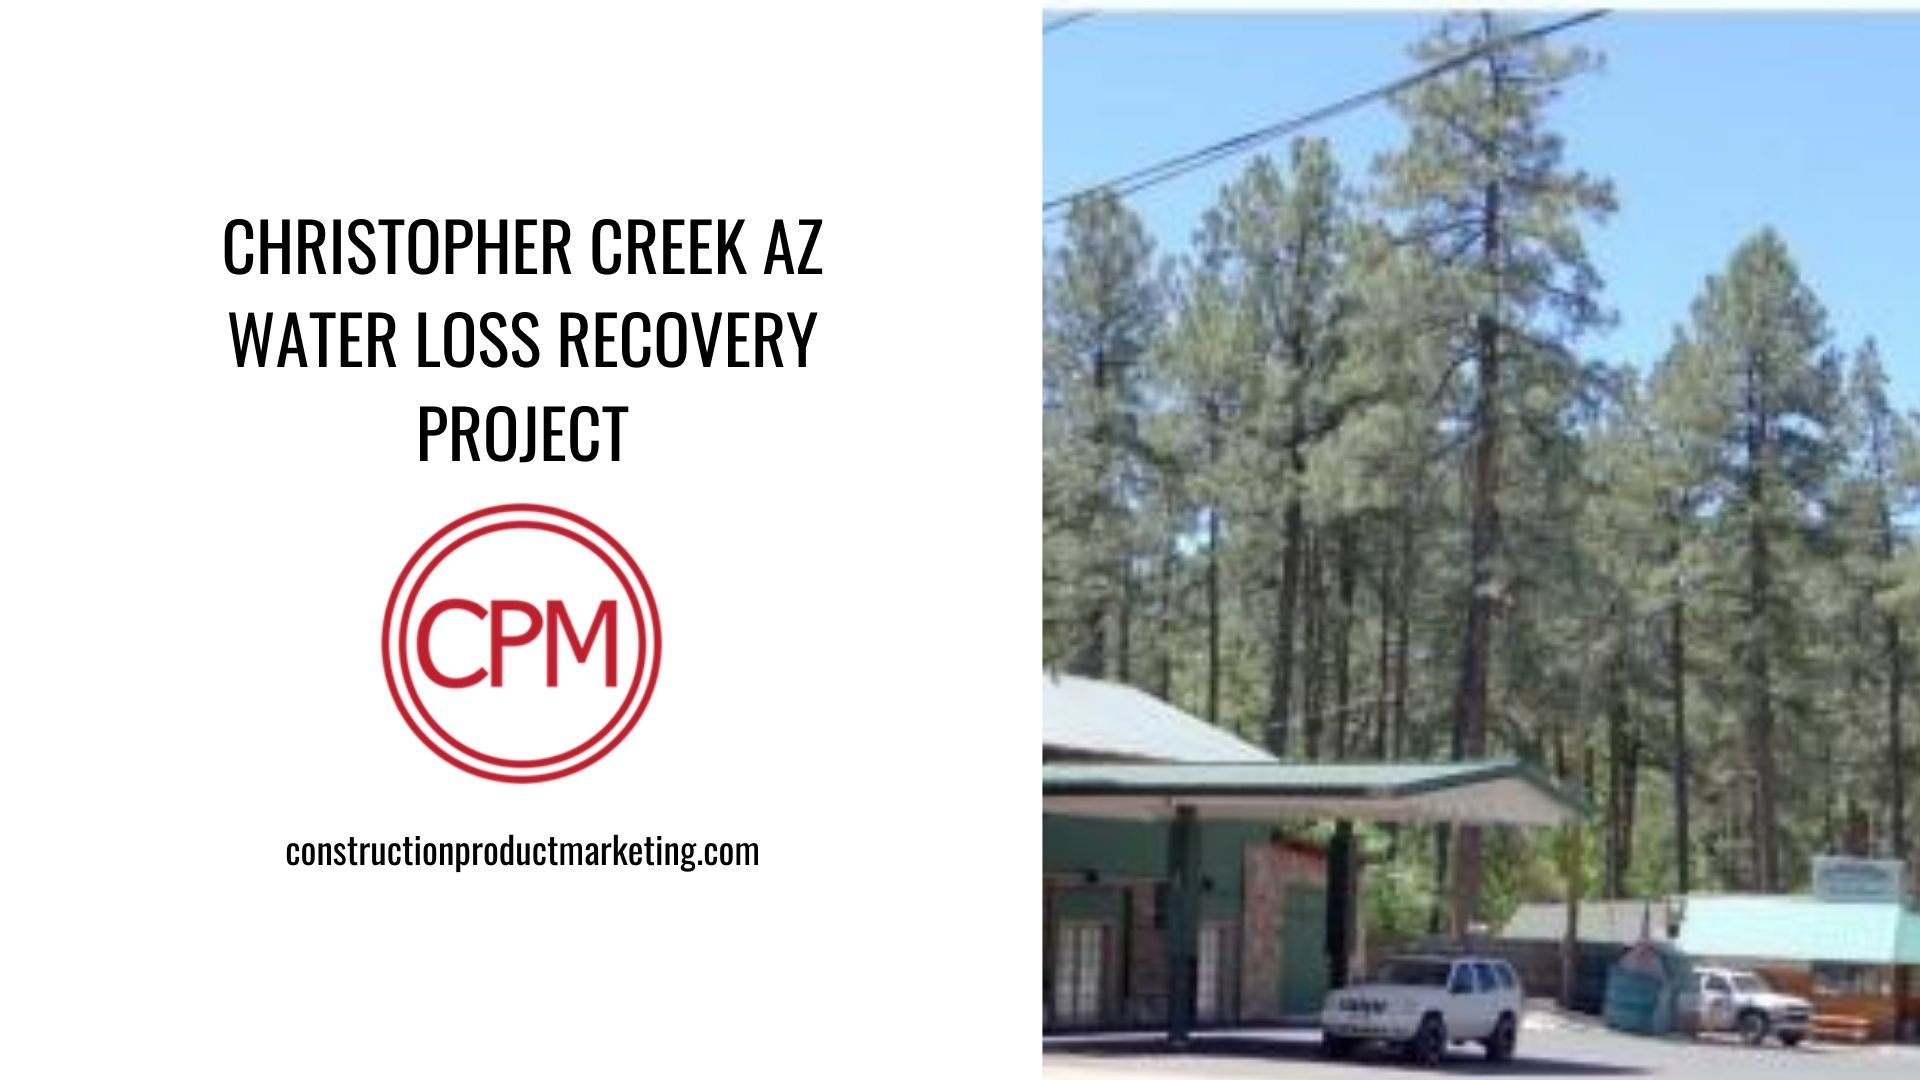 Christopher Creek AZ Water Loss Recovery Project